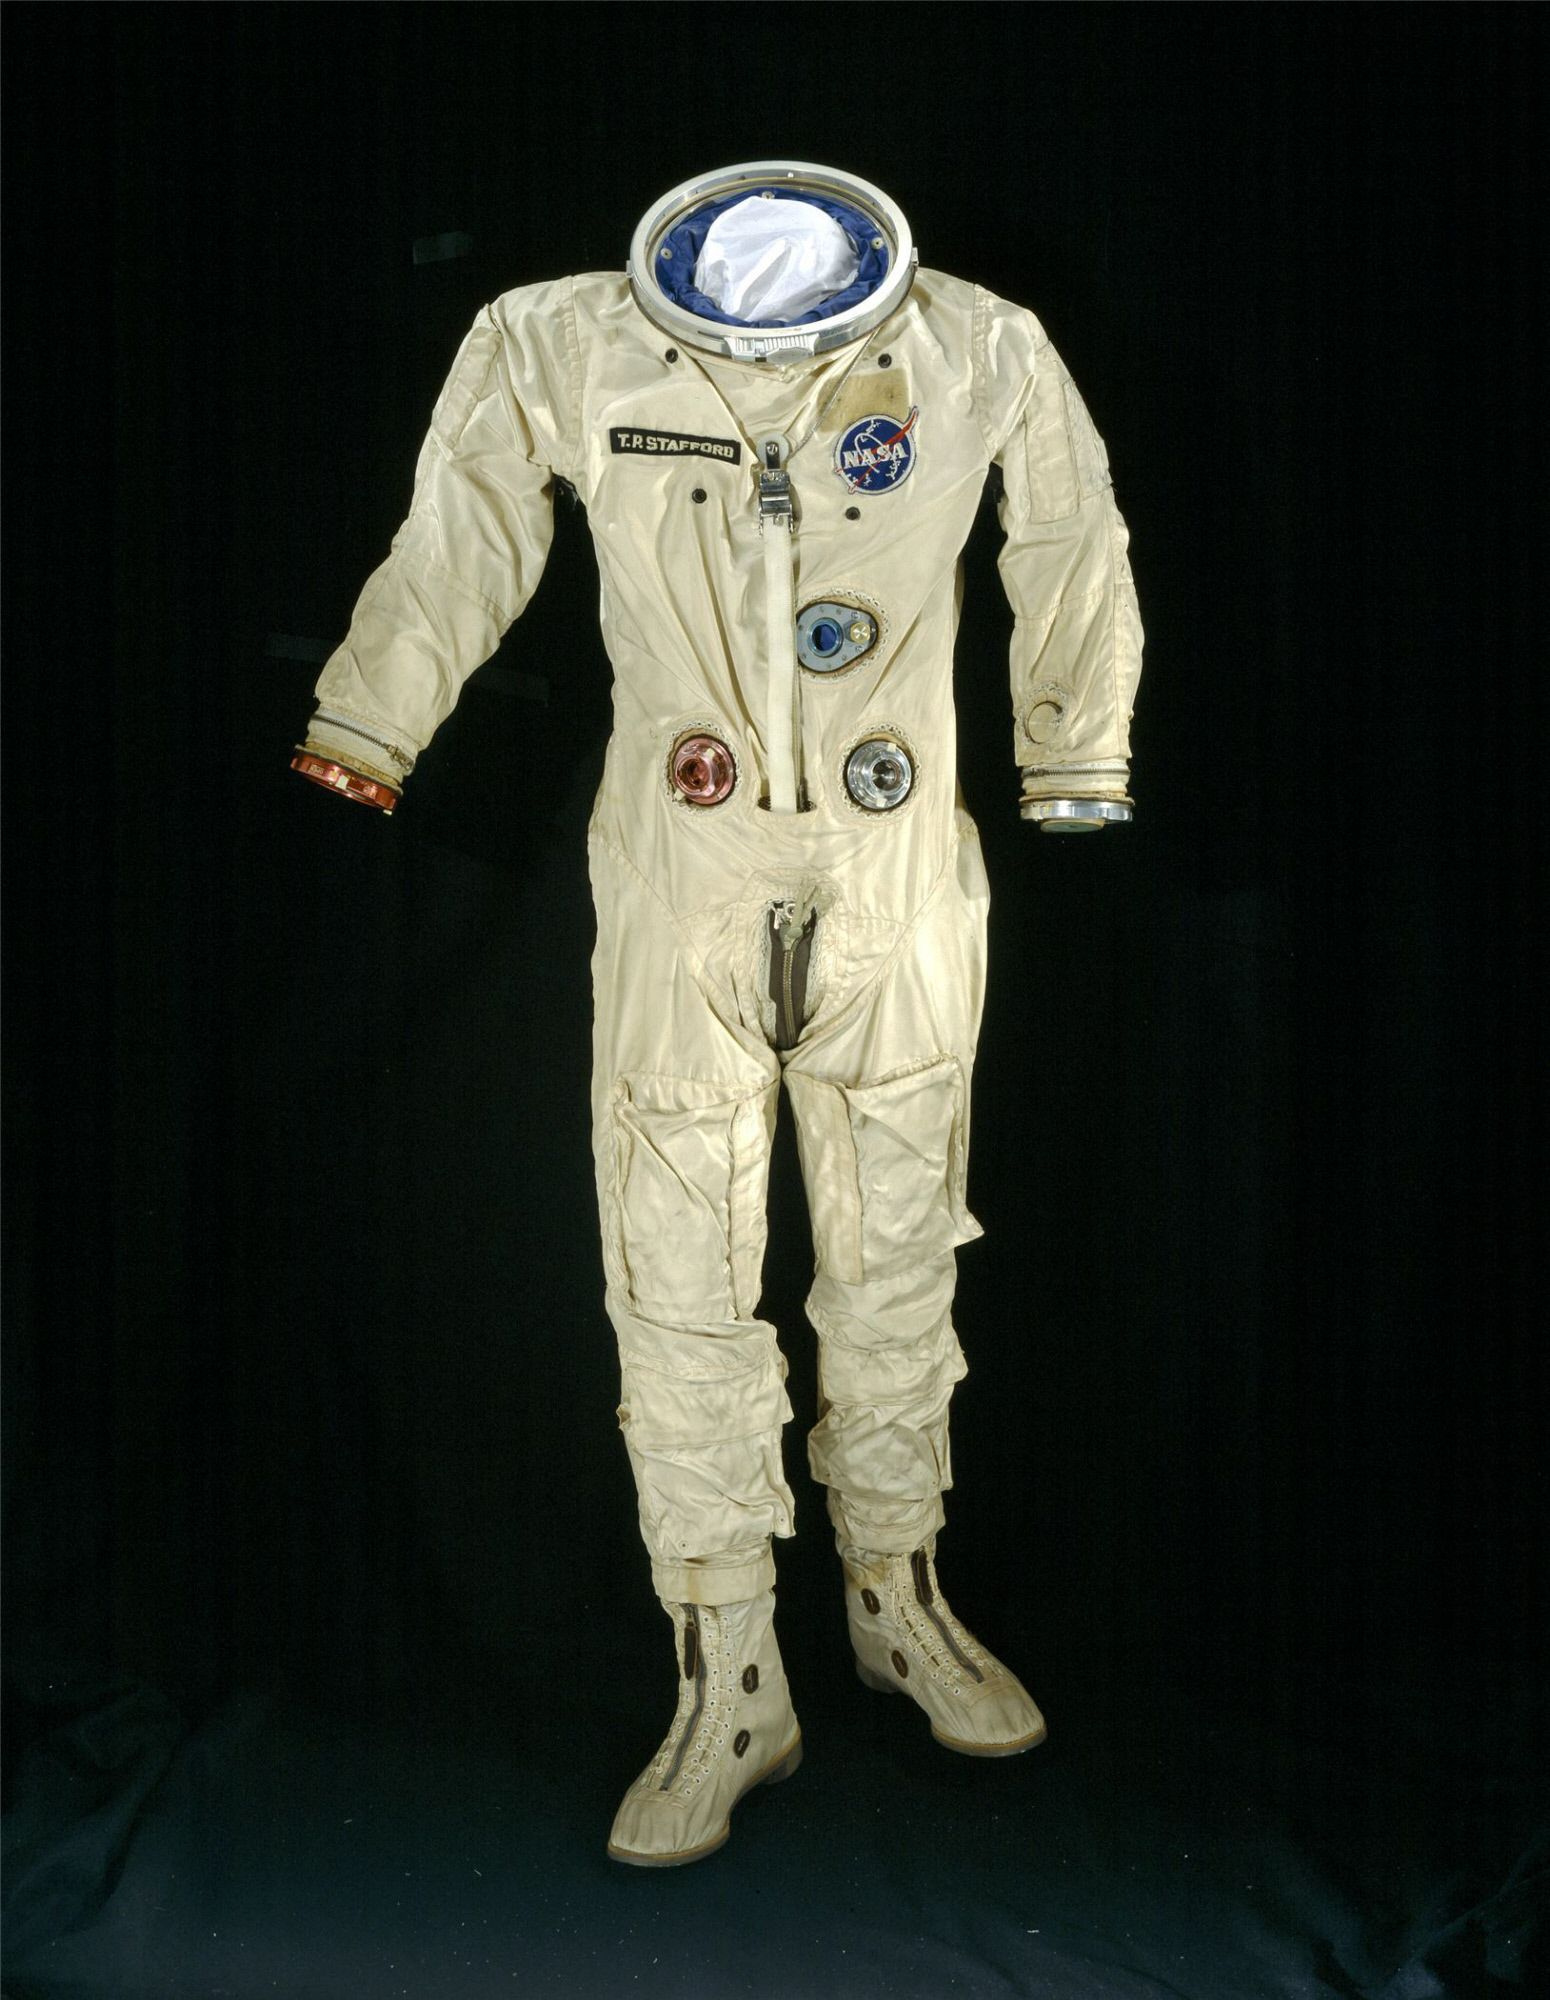 medium resolution of thomas p stafford wore this spacesuit on gemini ix a mission launched june 3 1966